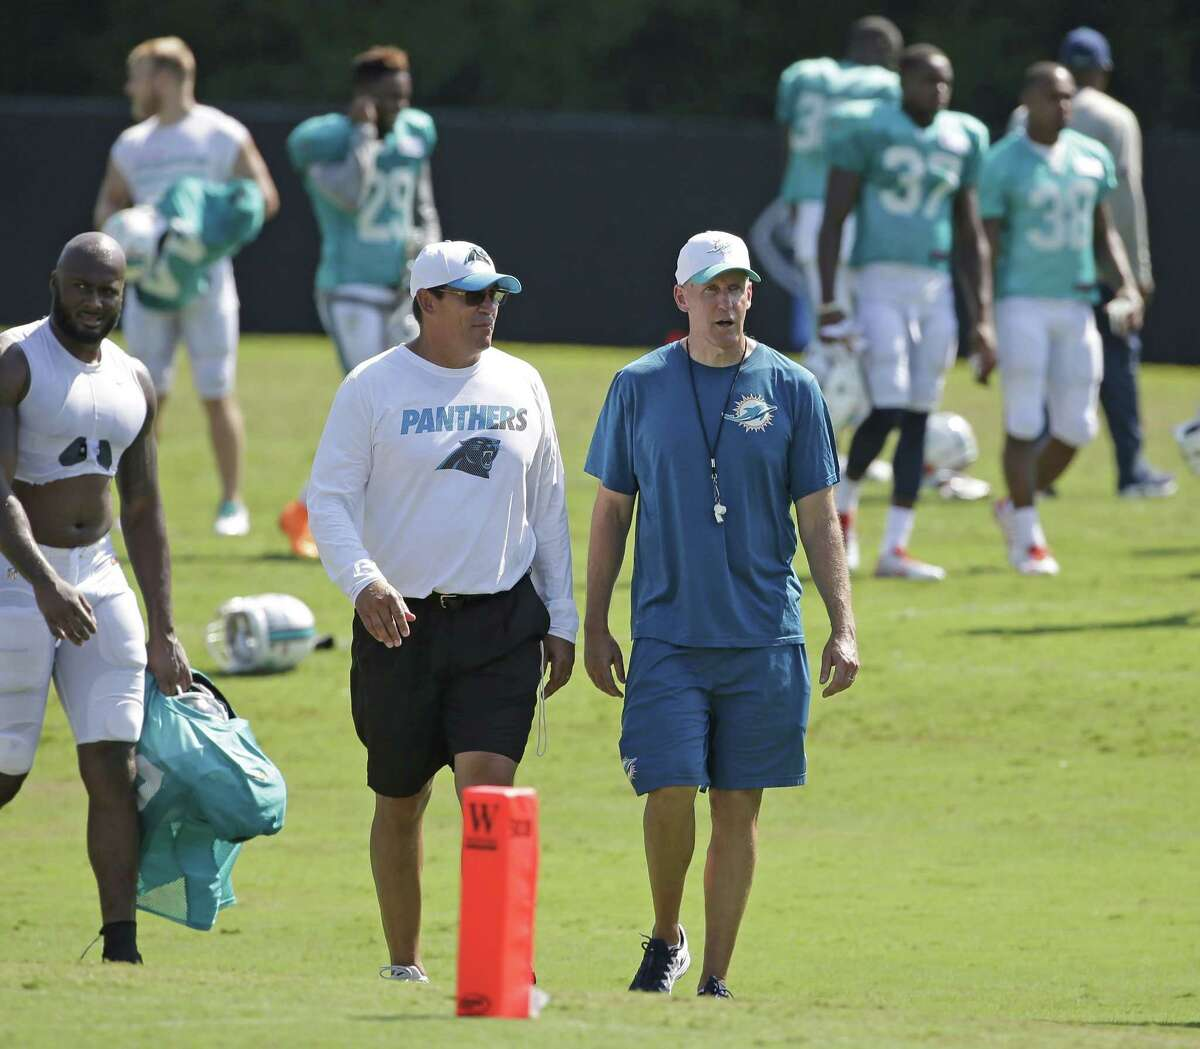 Carolina Panthers head coach Ron Rivera, left, and Miami Dolphins head coach Joe Philbin, right, talk as they walk off the field Wednesday after a joint practice at the Panthers' training camp in Spartanburg, S.C.